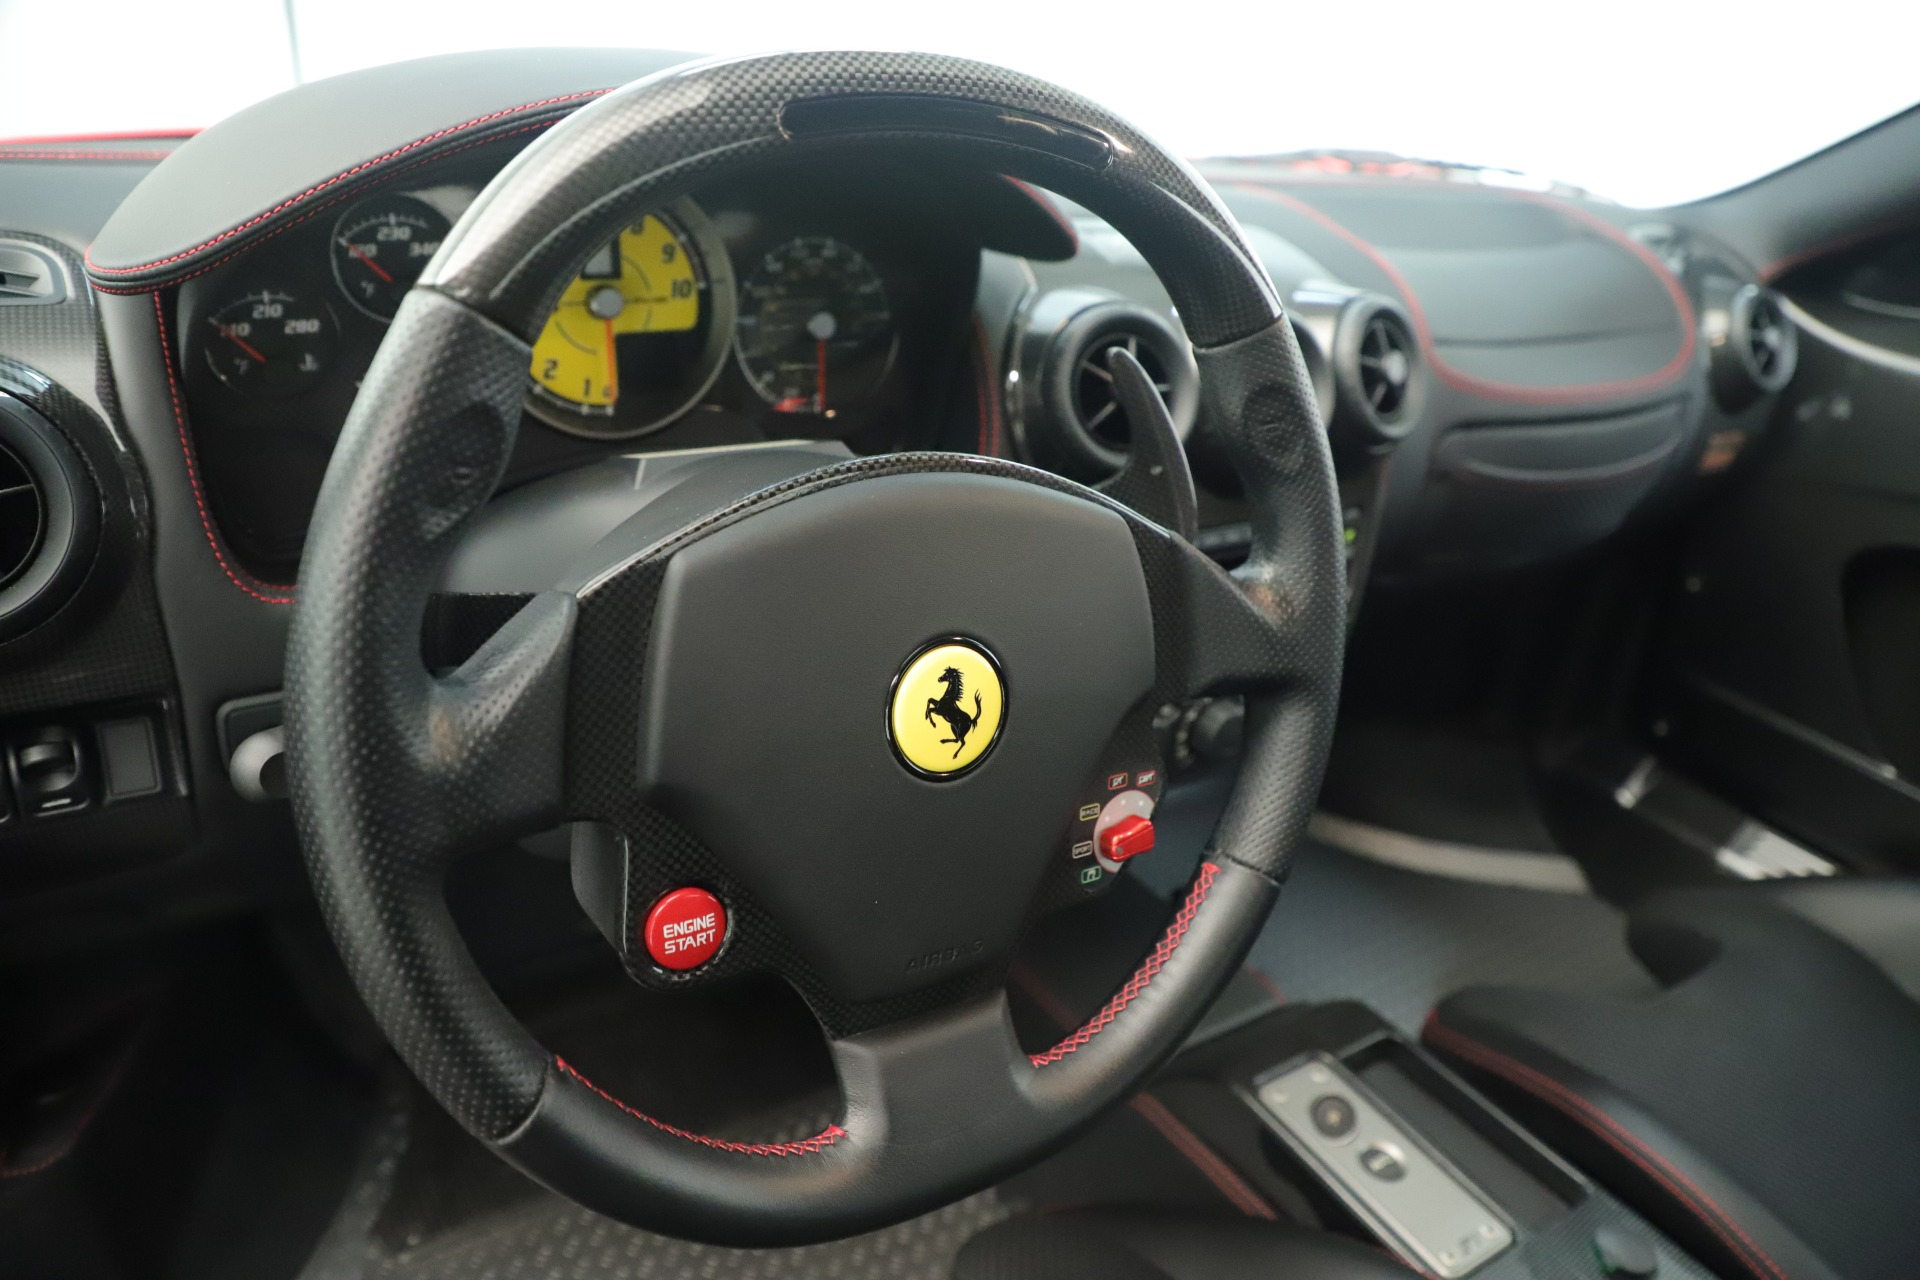 Used 2008 Ferrari F430 Scuderia For Sale In Greenwich, CT 3381_p21